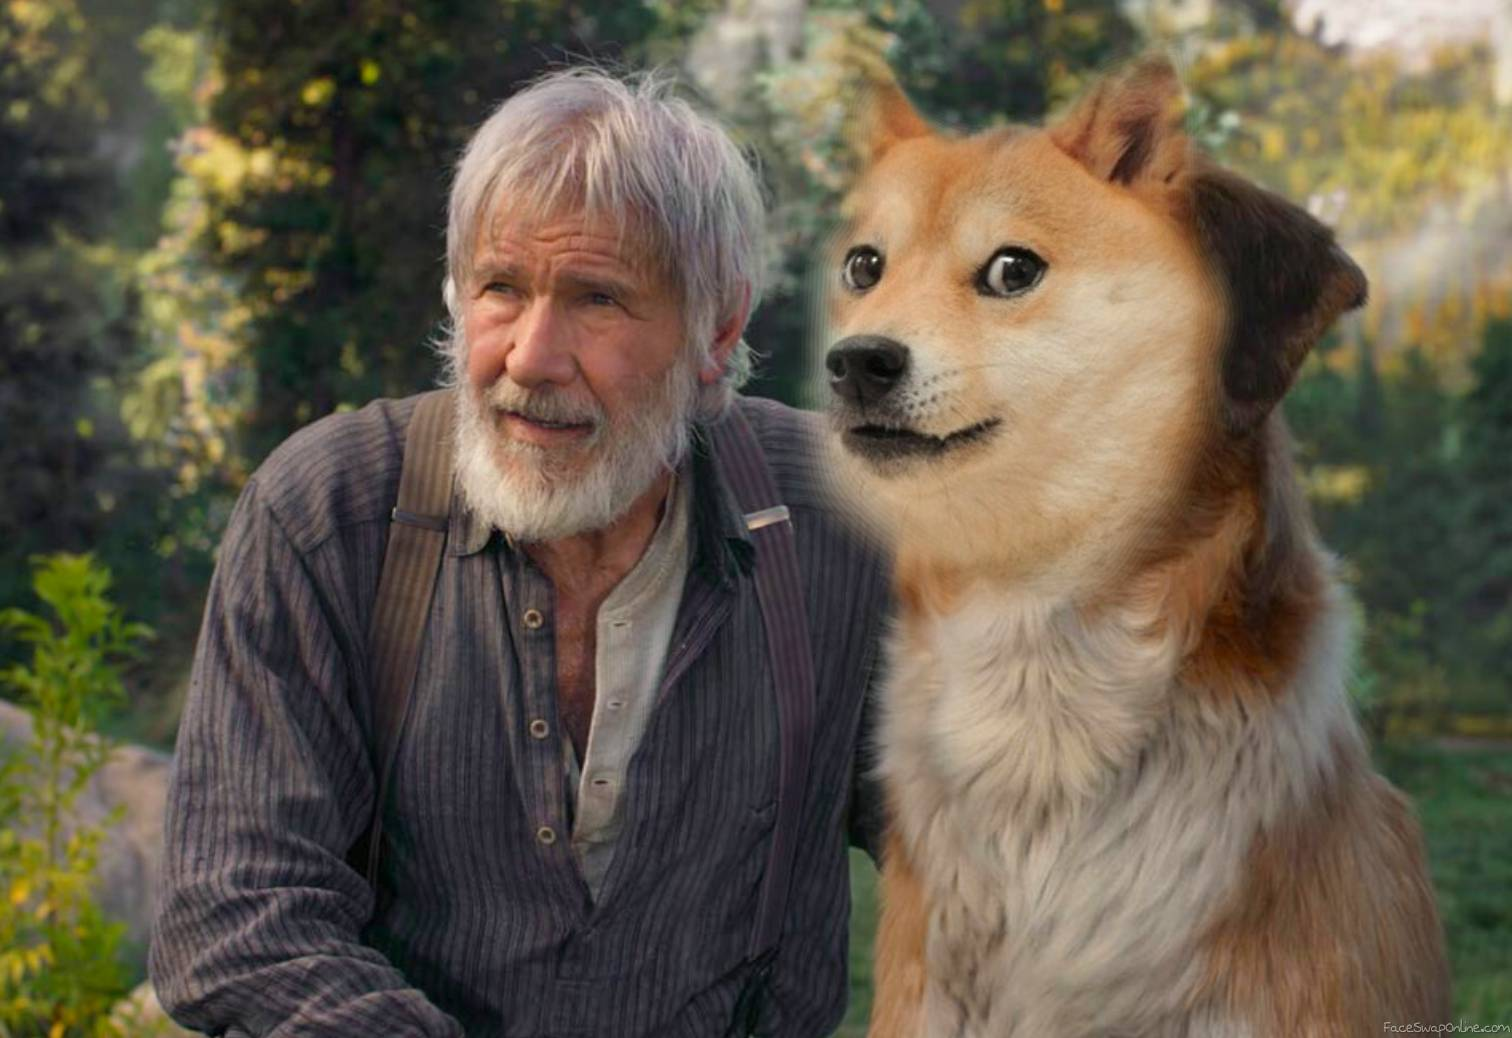 The Call of the Wild doge